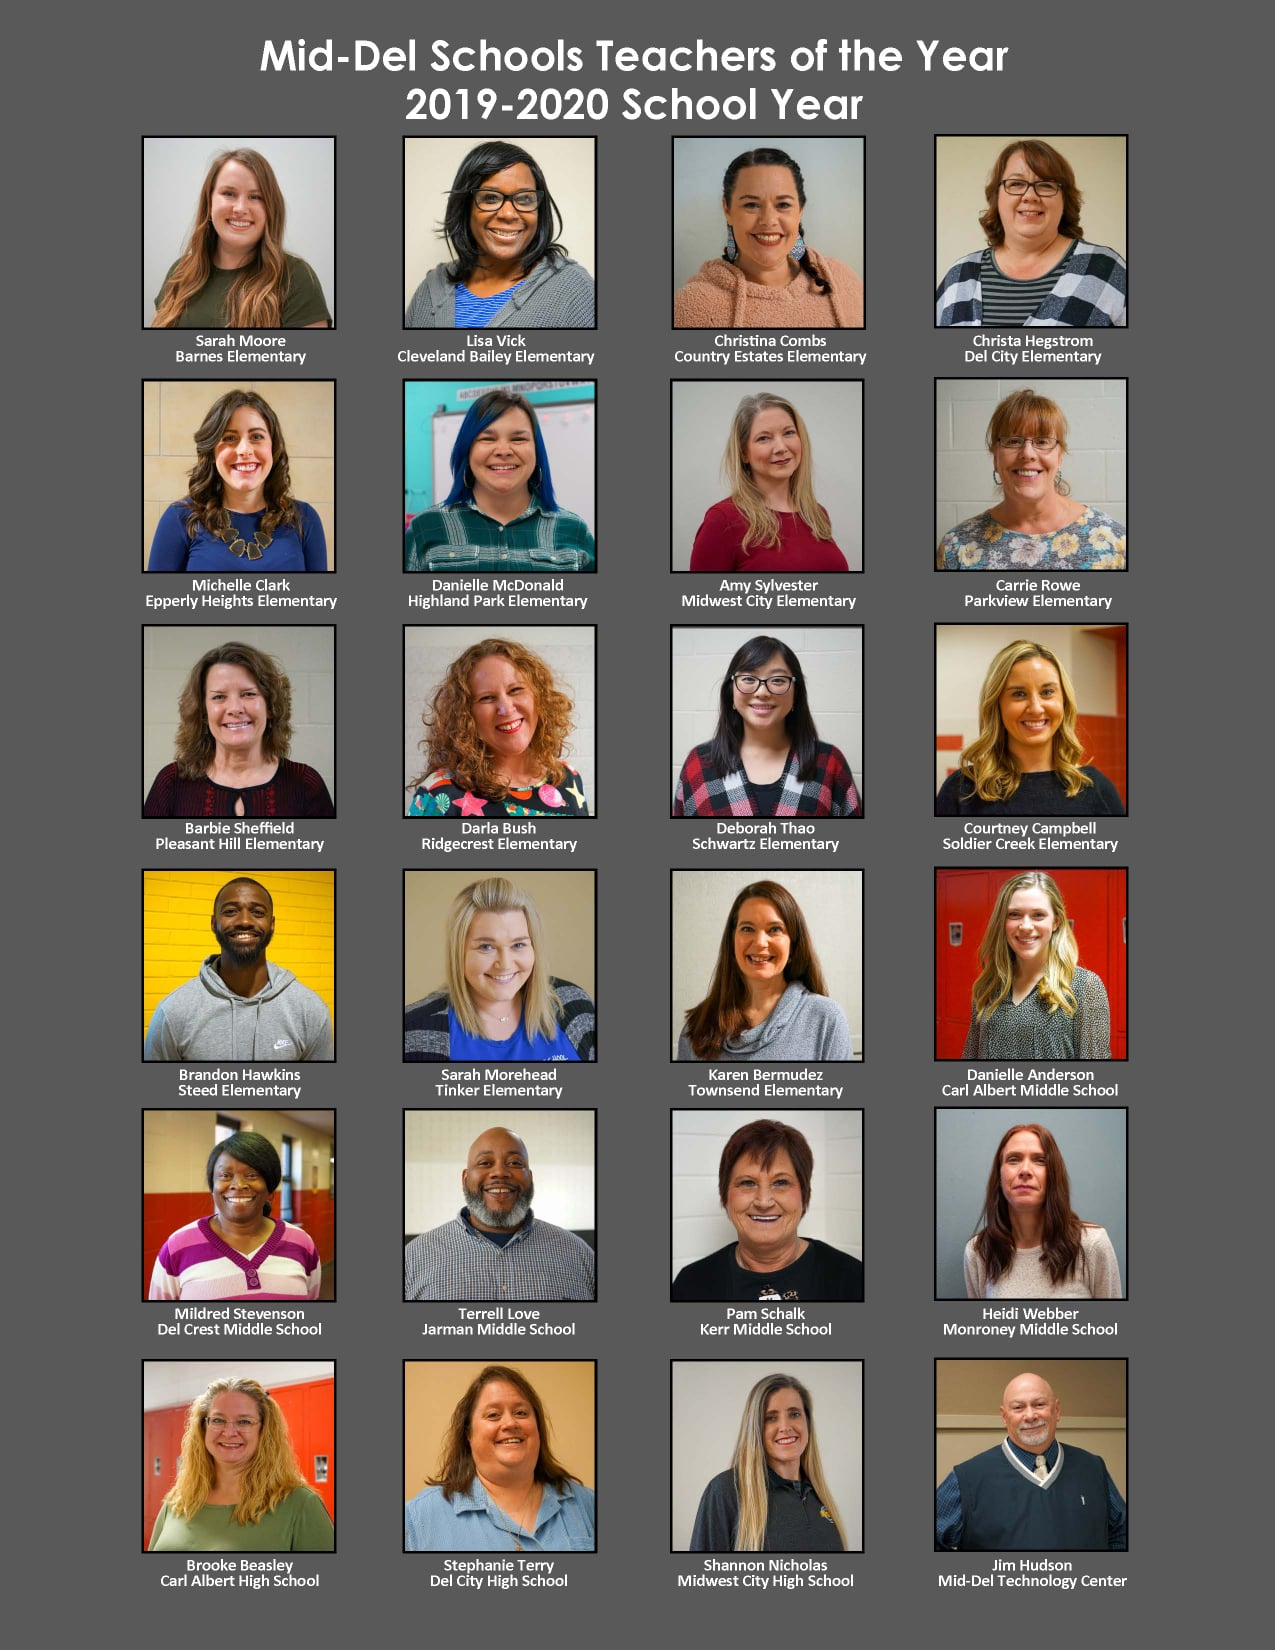 Collage of Site Teachers of the Year in 2019-2020